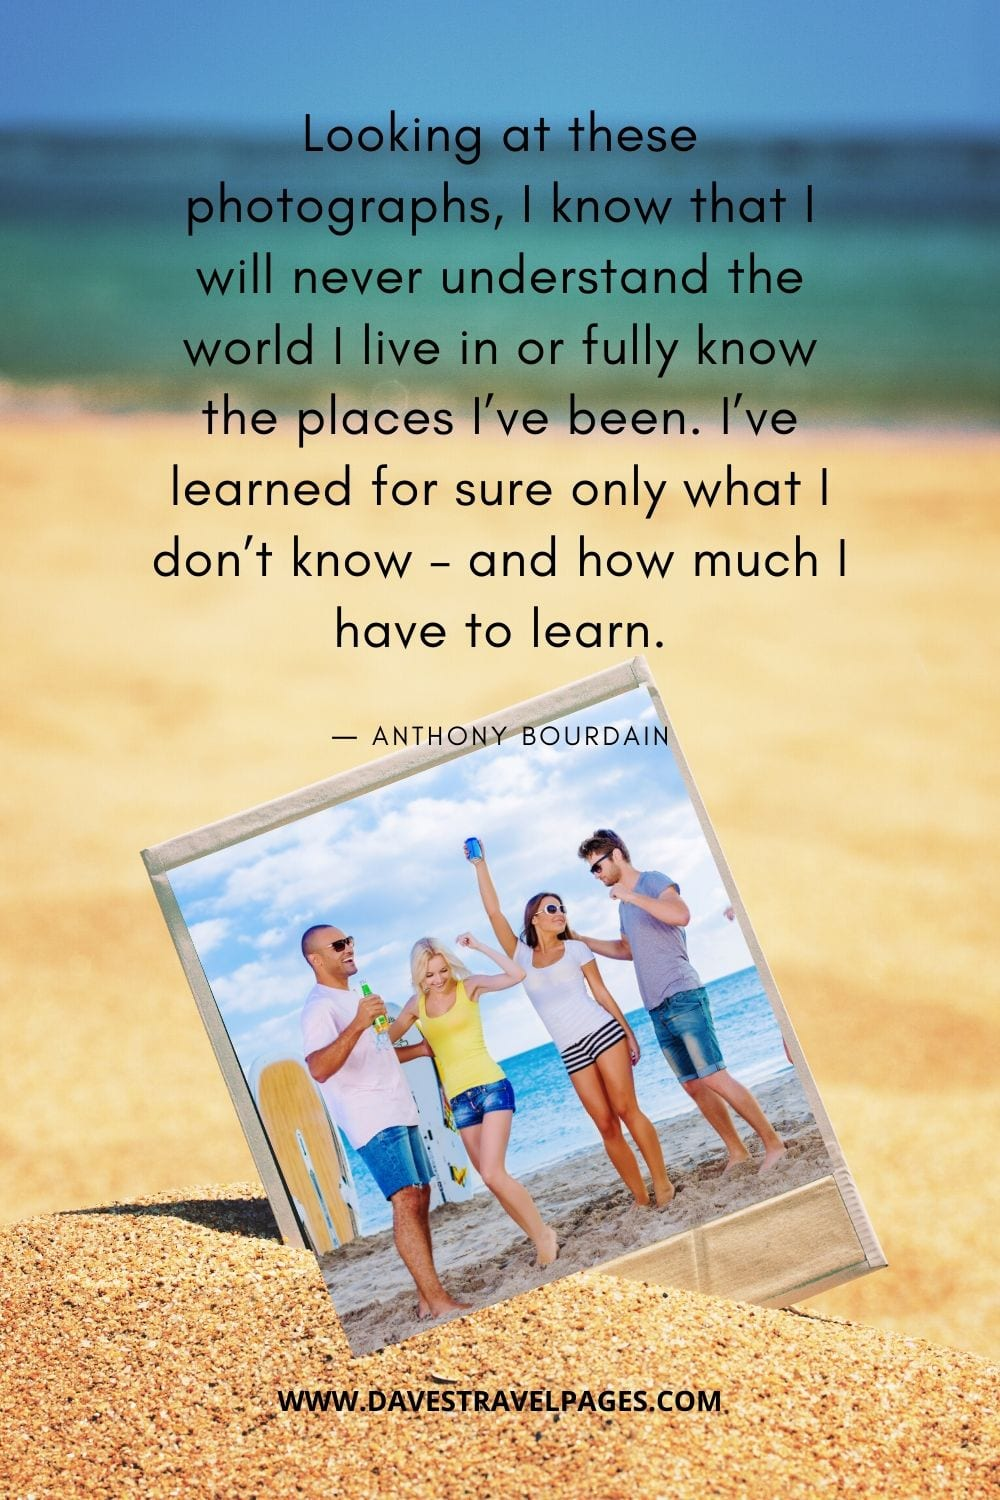 """""""Looking at these photographs, I know that I will never understand the world I live in or fully know the places I've been. I've learned for sure only what I don't know – and how much I have to learn.""""― Anthony Bourdain"""